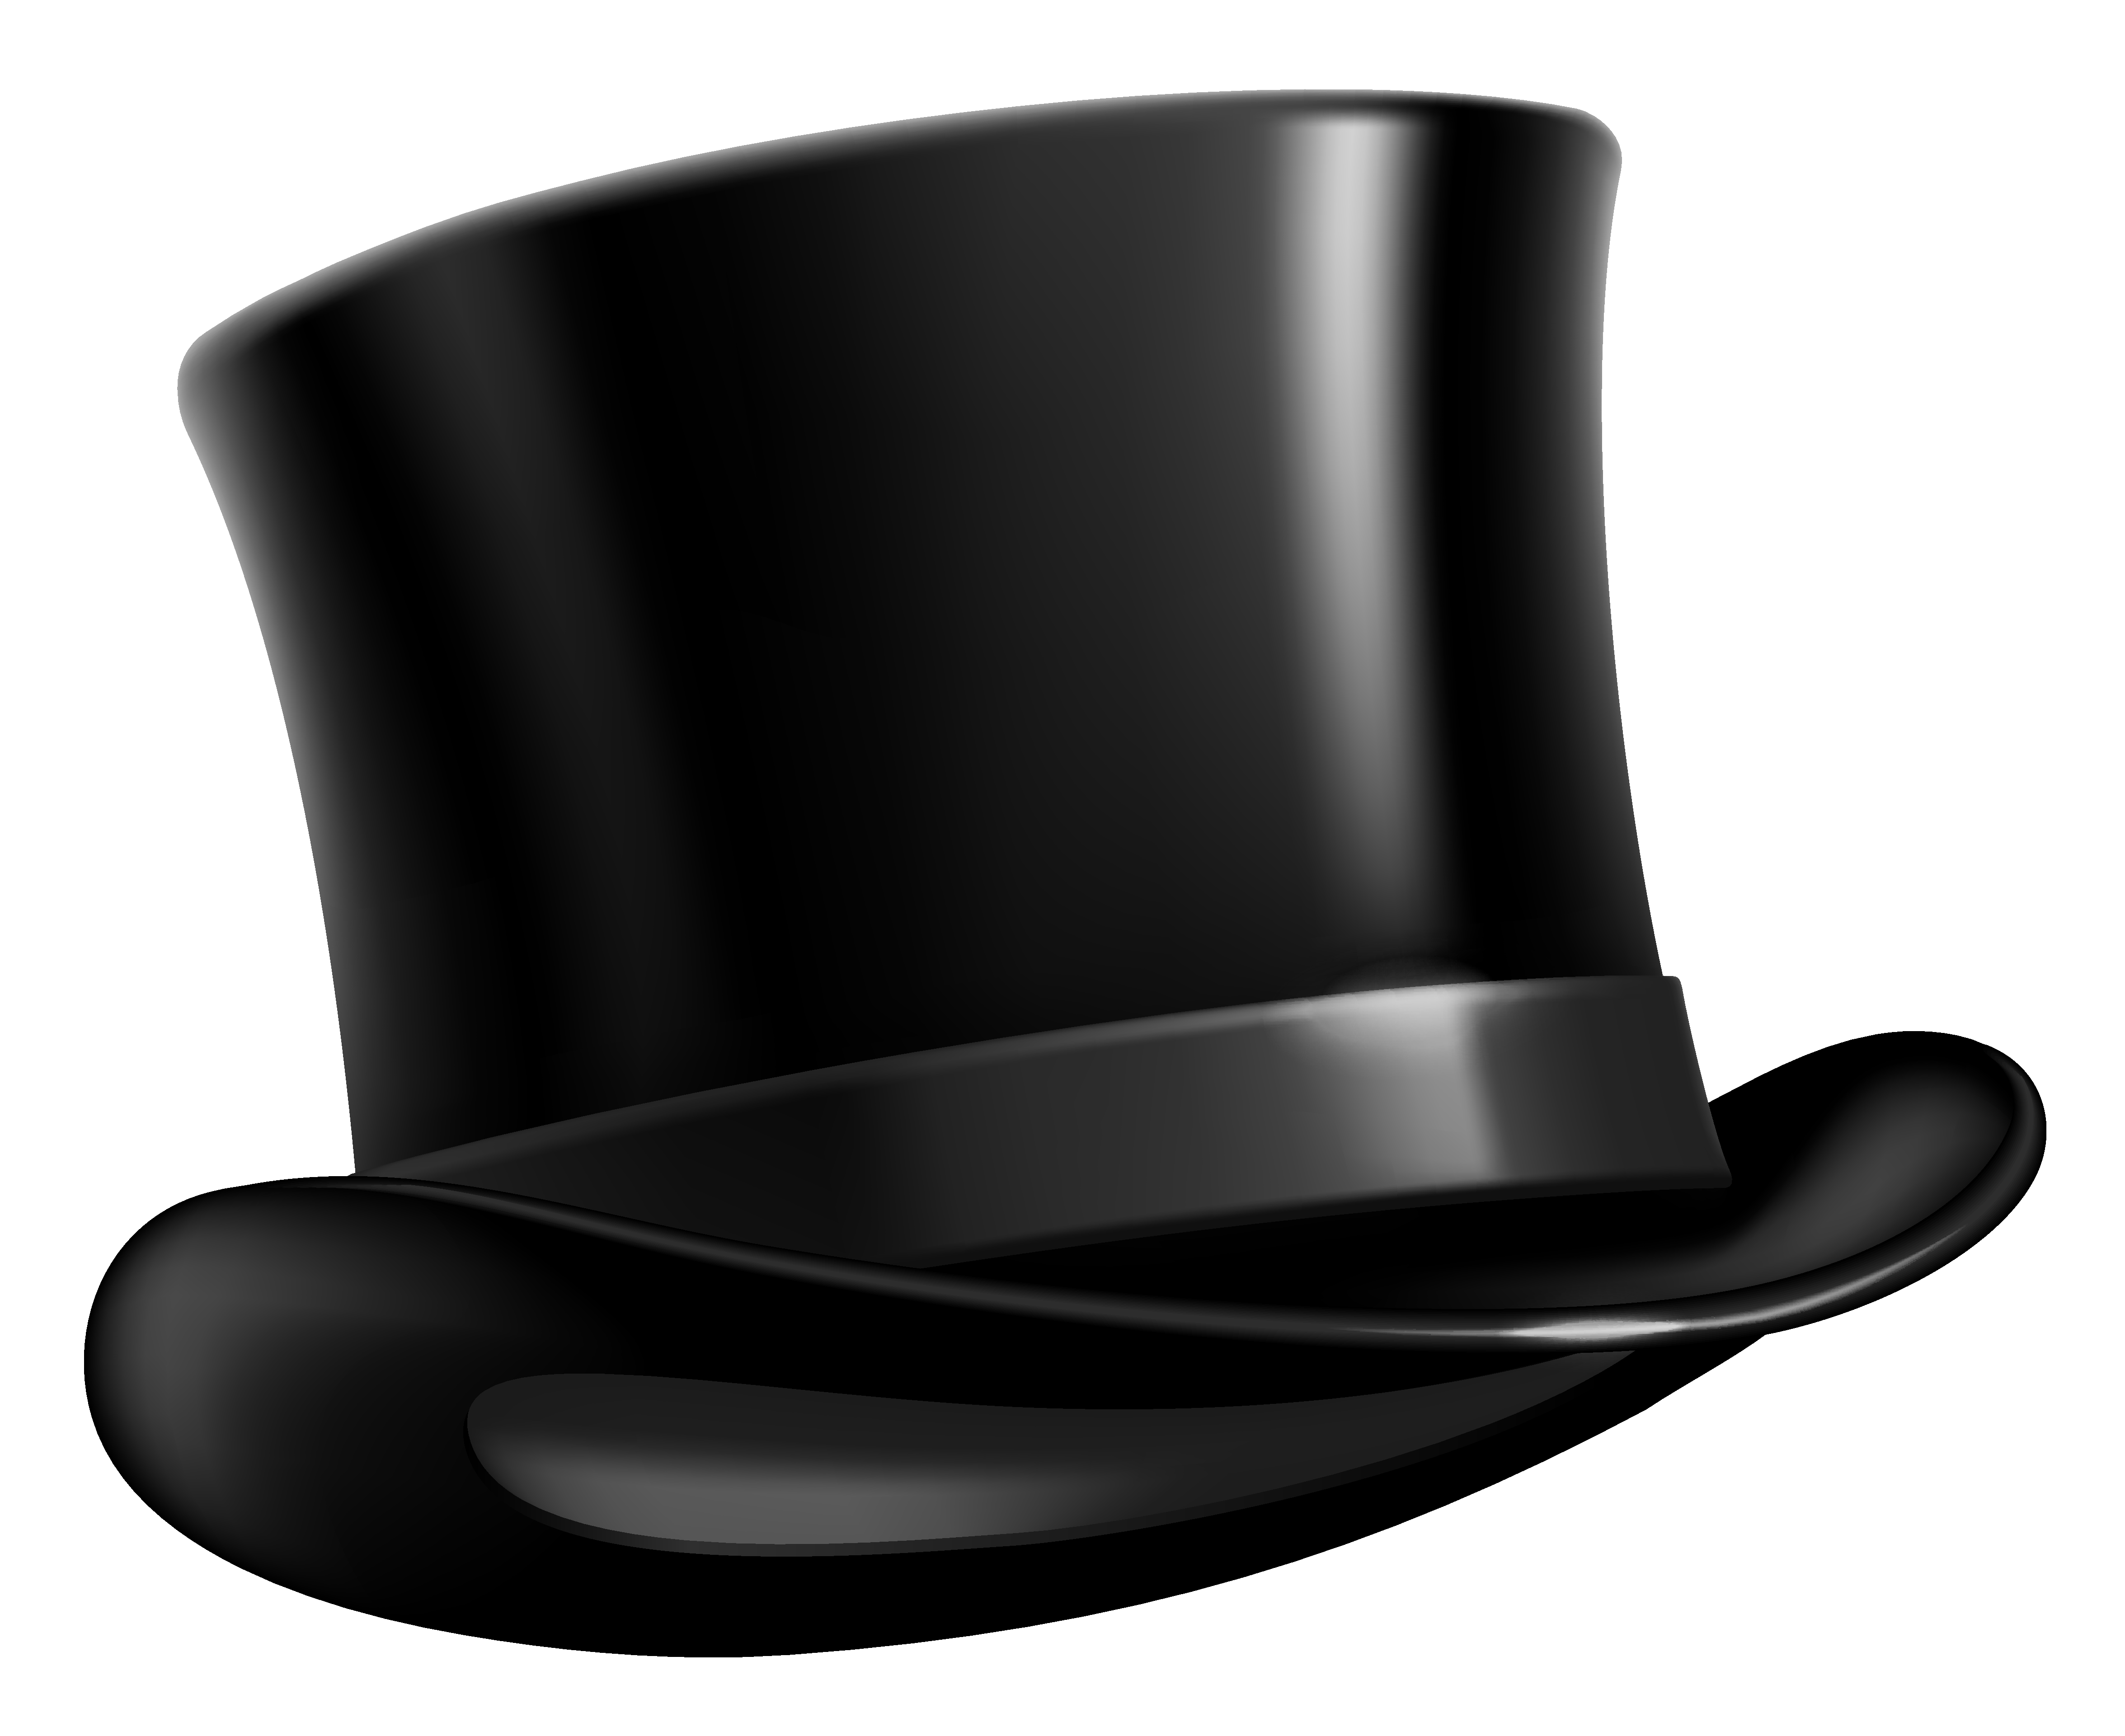 Top Hat clipart transparent Topper Image All File PNG